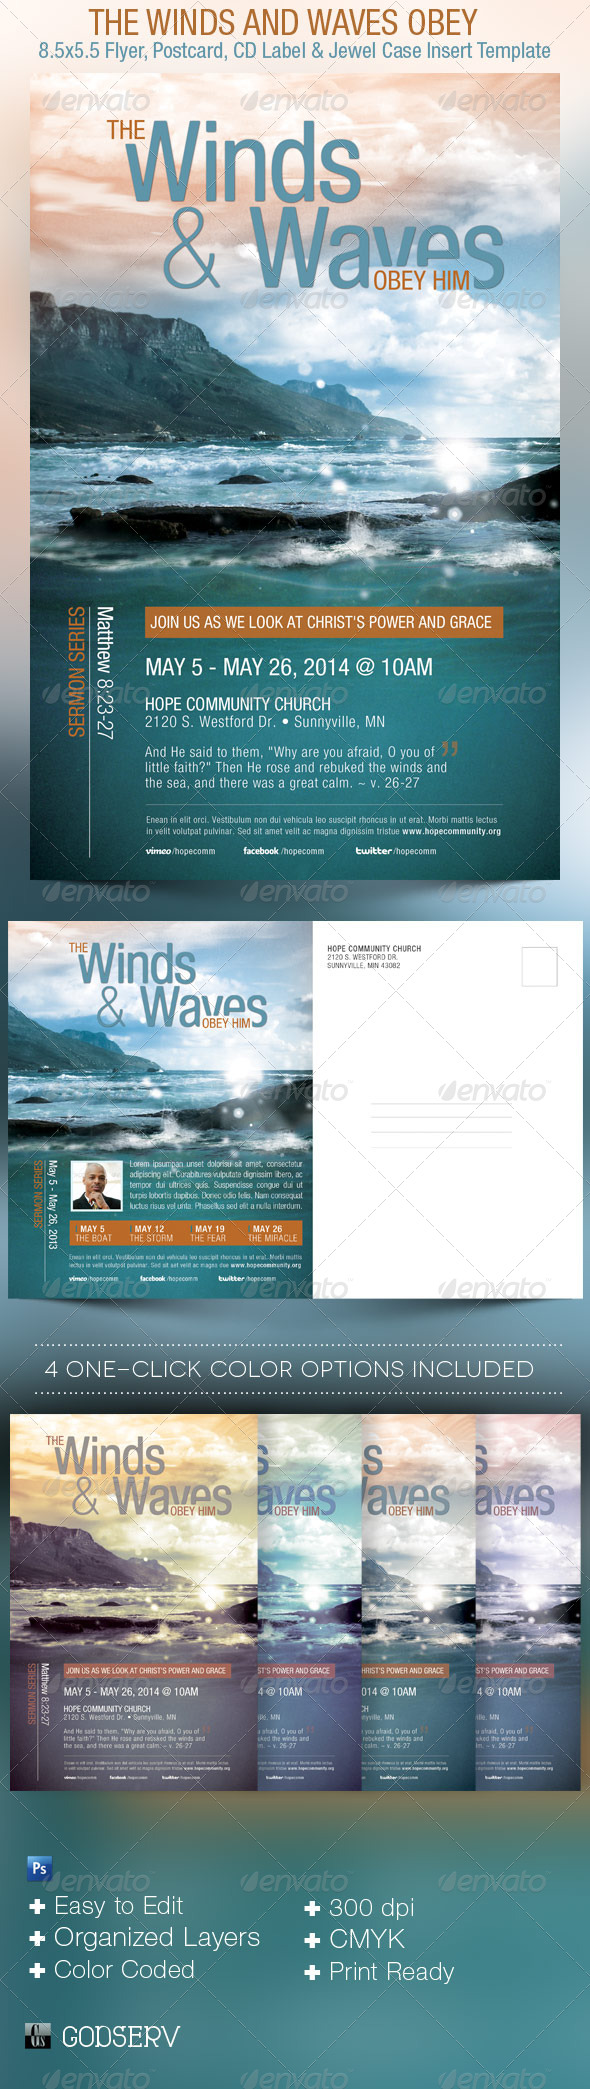 GraphicRiver Winds and Waves Obey Him Church Flyer Template 4236964